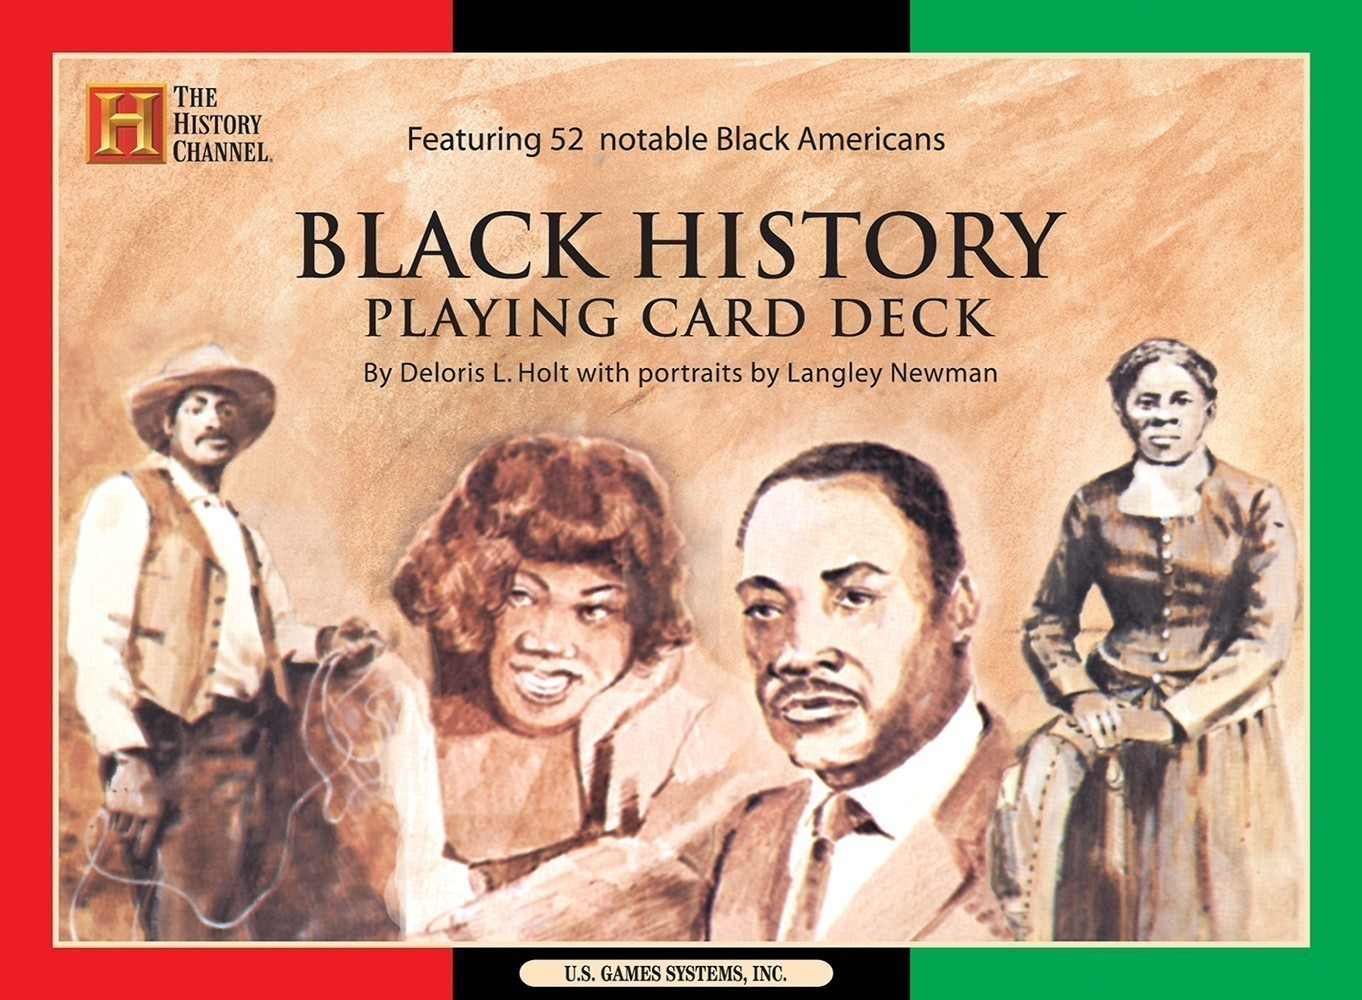 Black History Playing Card Deck